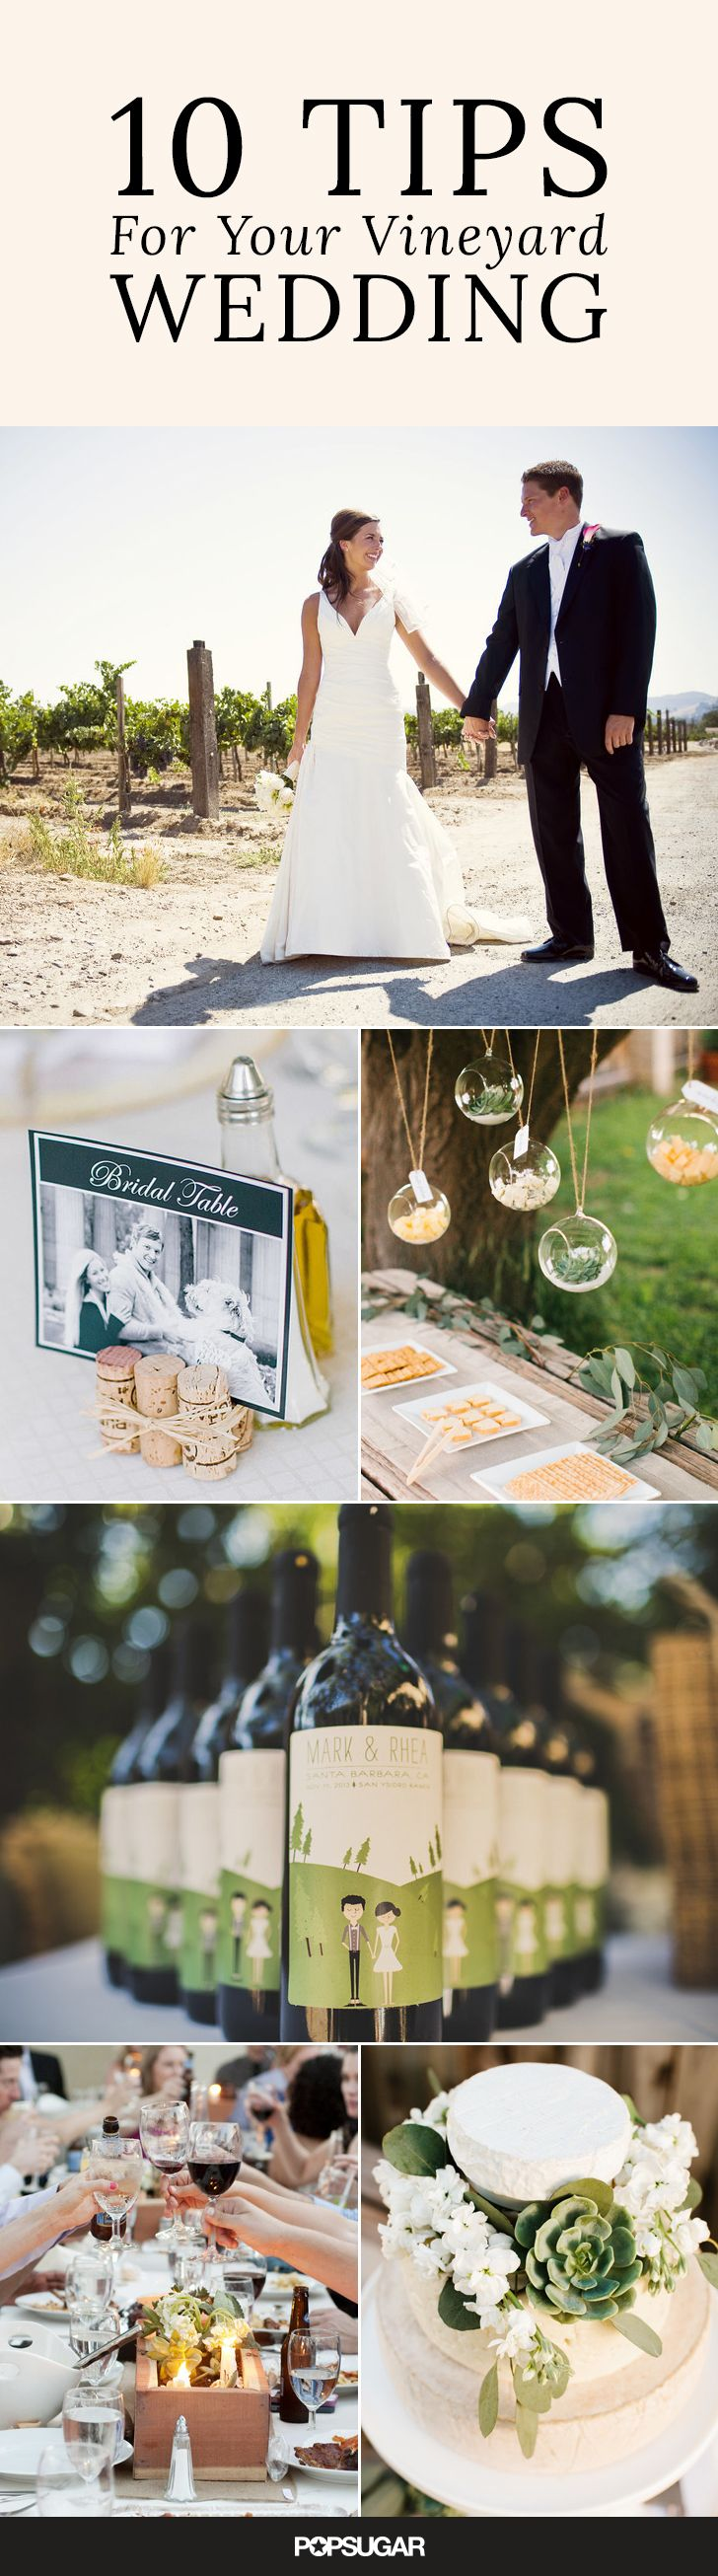 If you think a vineyard wedding sounds like nuptial bliss, you're not alone! Wine-country weddings are a growing trend, and it's not difficult to understand why: they're the perfect balance of rustic and romantic. Here are the top 10 tips for your dream vineyard wedding.